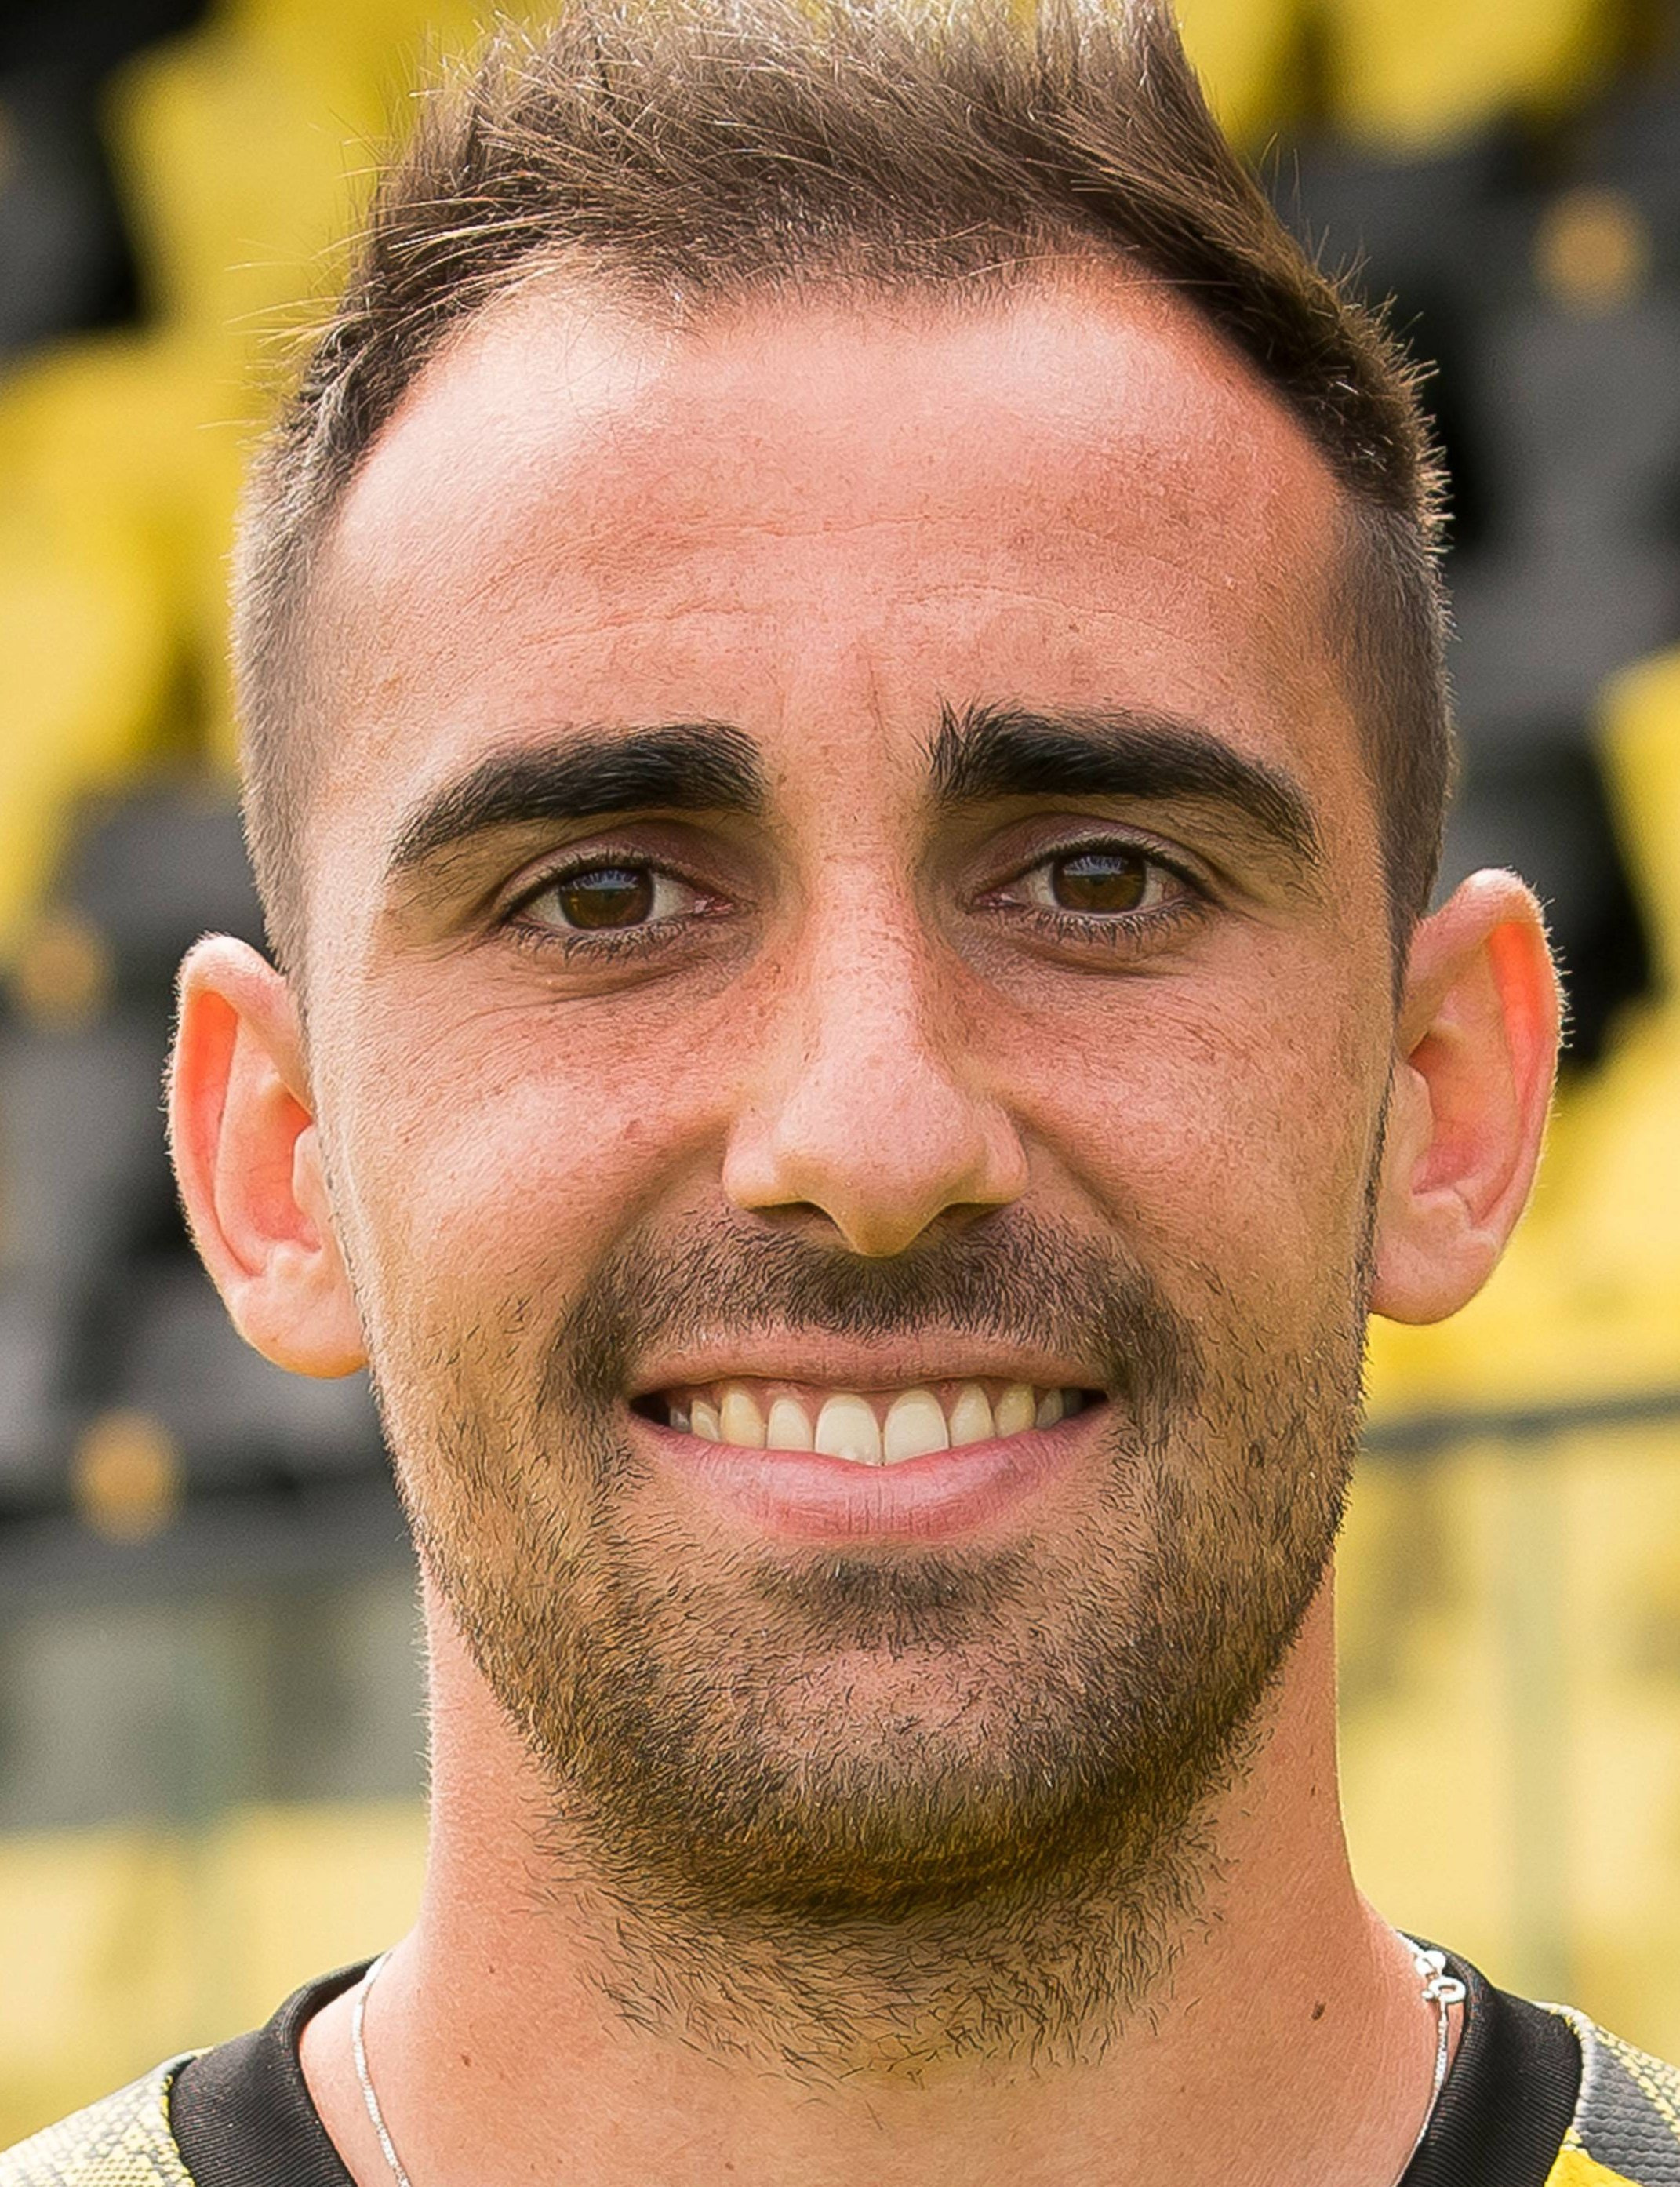 Andrea Garcia Play paco alcácer - player profile 19/20 | transfermarkt